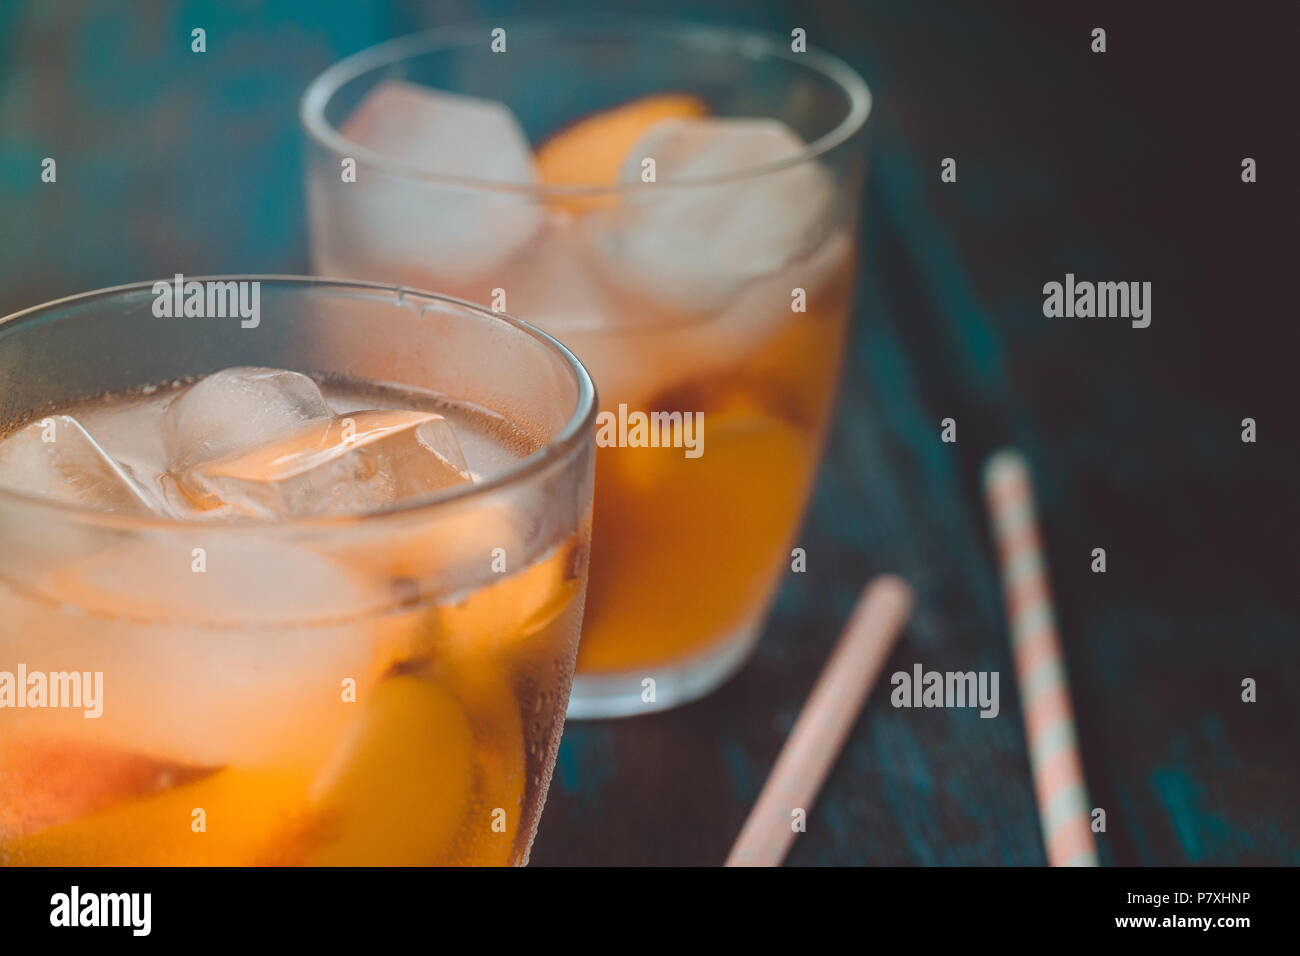 Peach aperol spritz with peach slices on wooden desk. Summer cocktails. Cold peach lemonade. - Stock Image